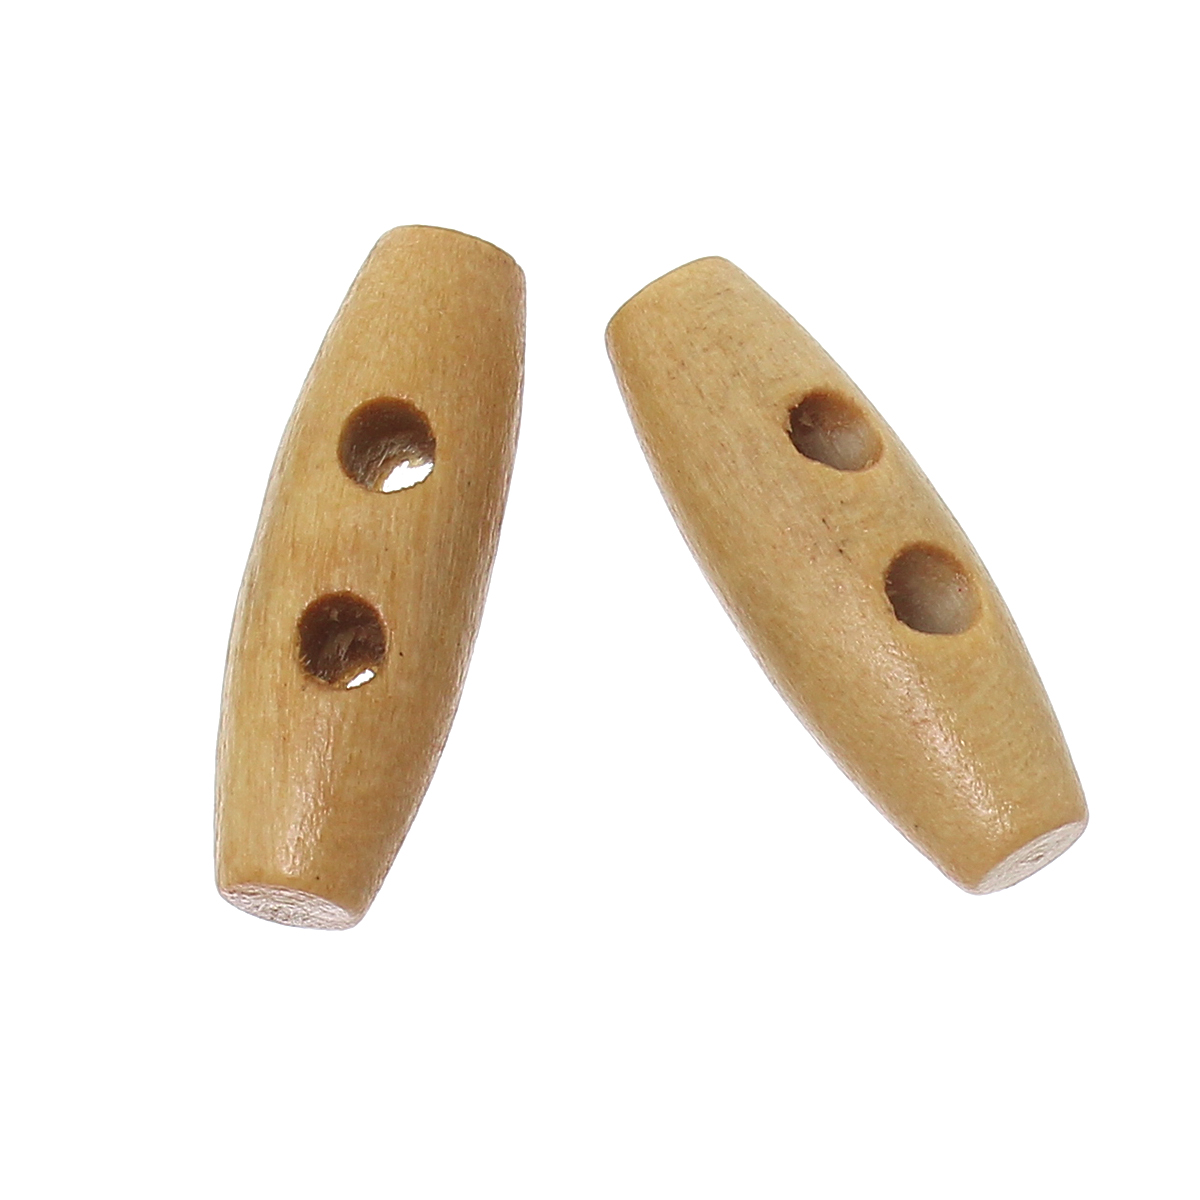 100PCs Brown wood buttons Sewing Horn Toggle Buttons For Coat Cloth Accessories Craft DI ...